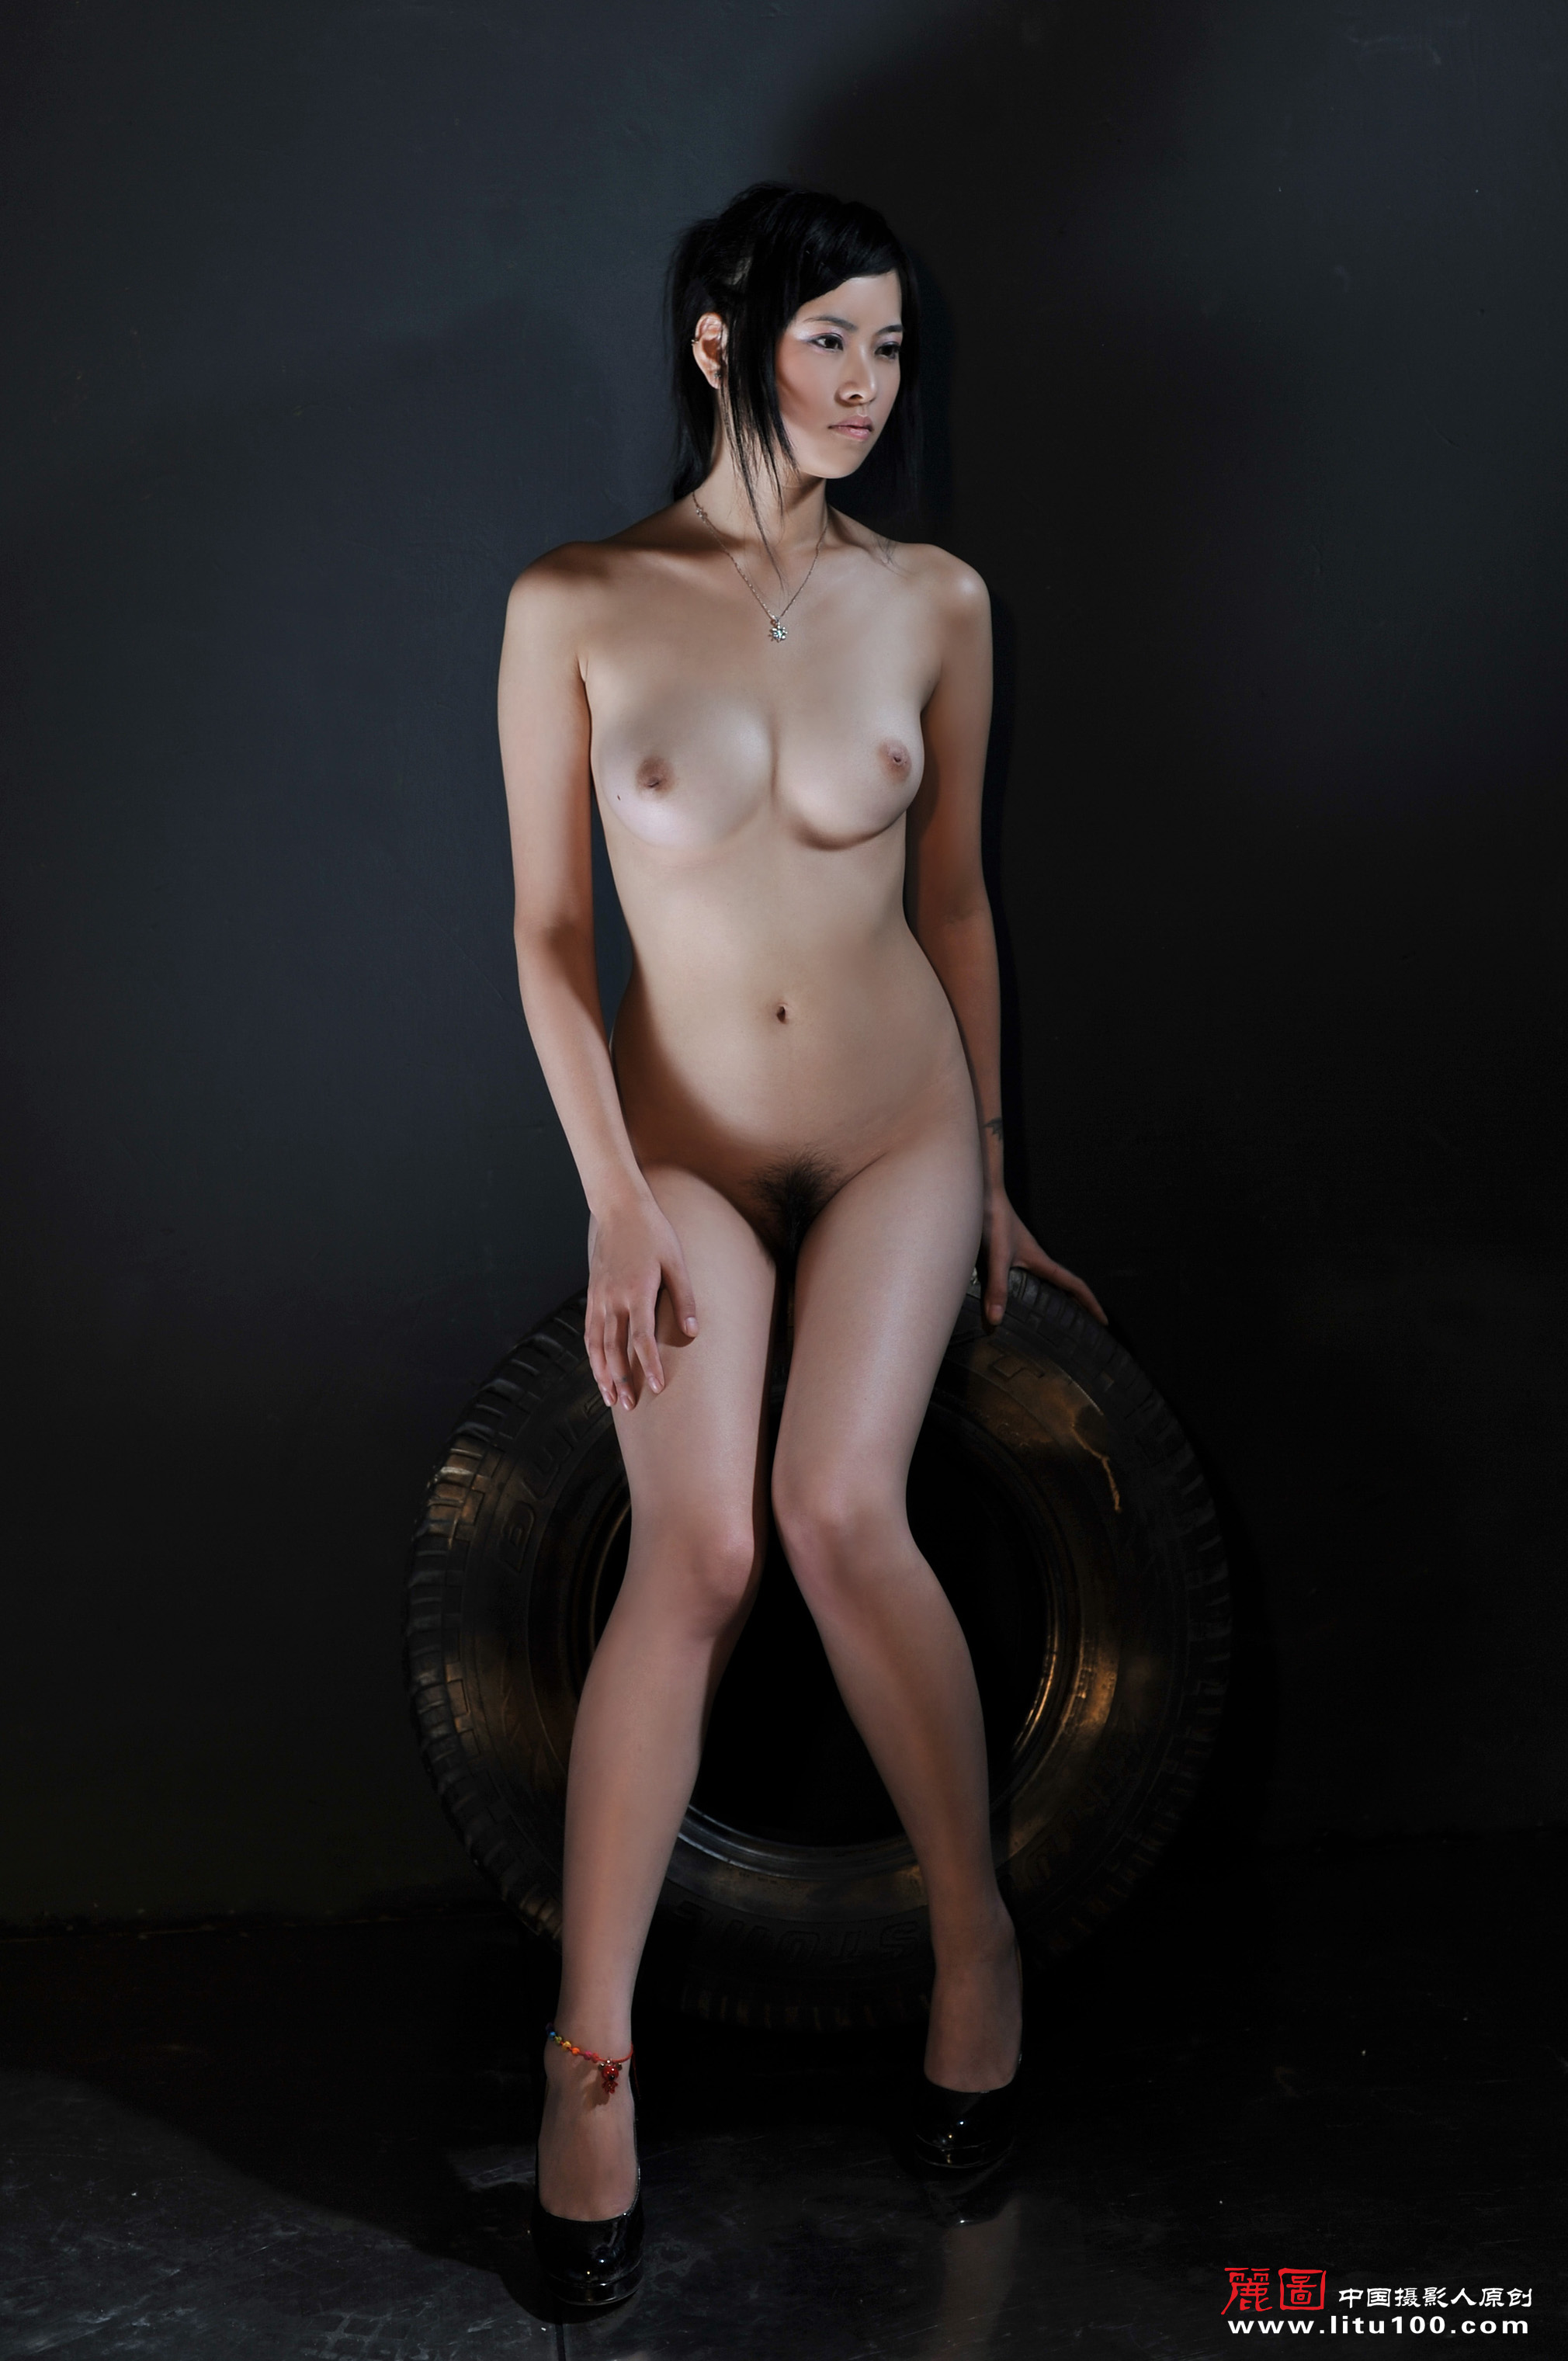 Korean nudeart naked pic this old